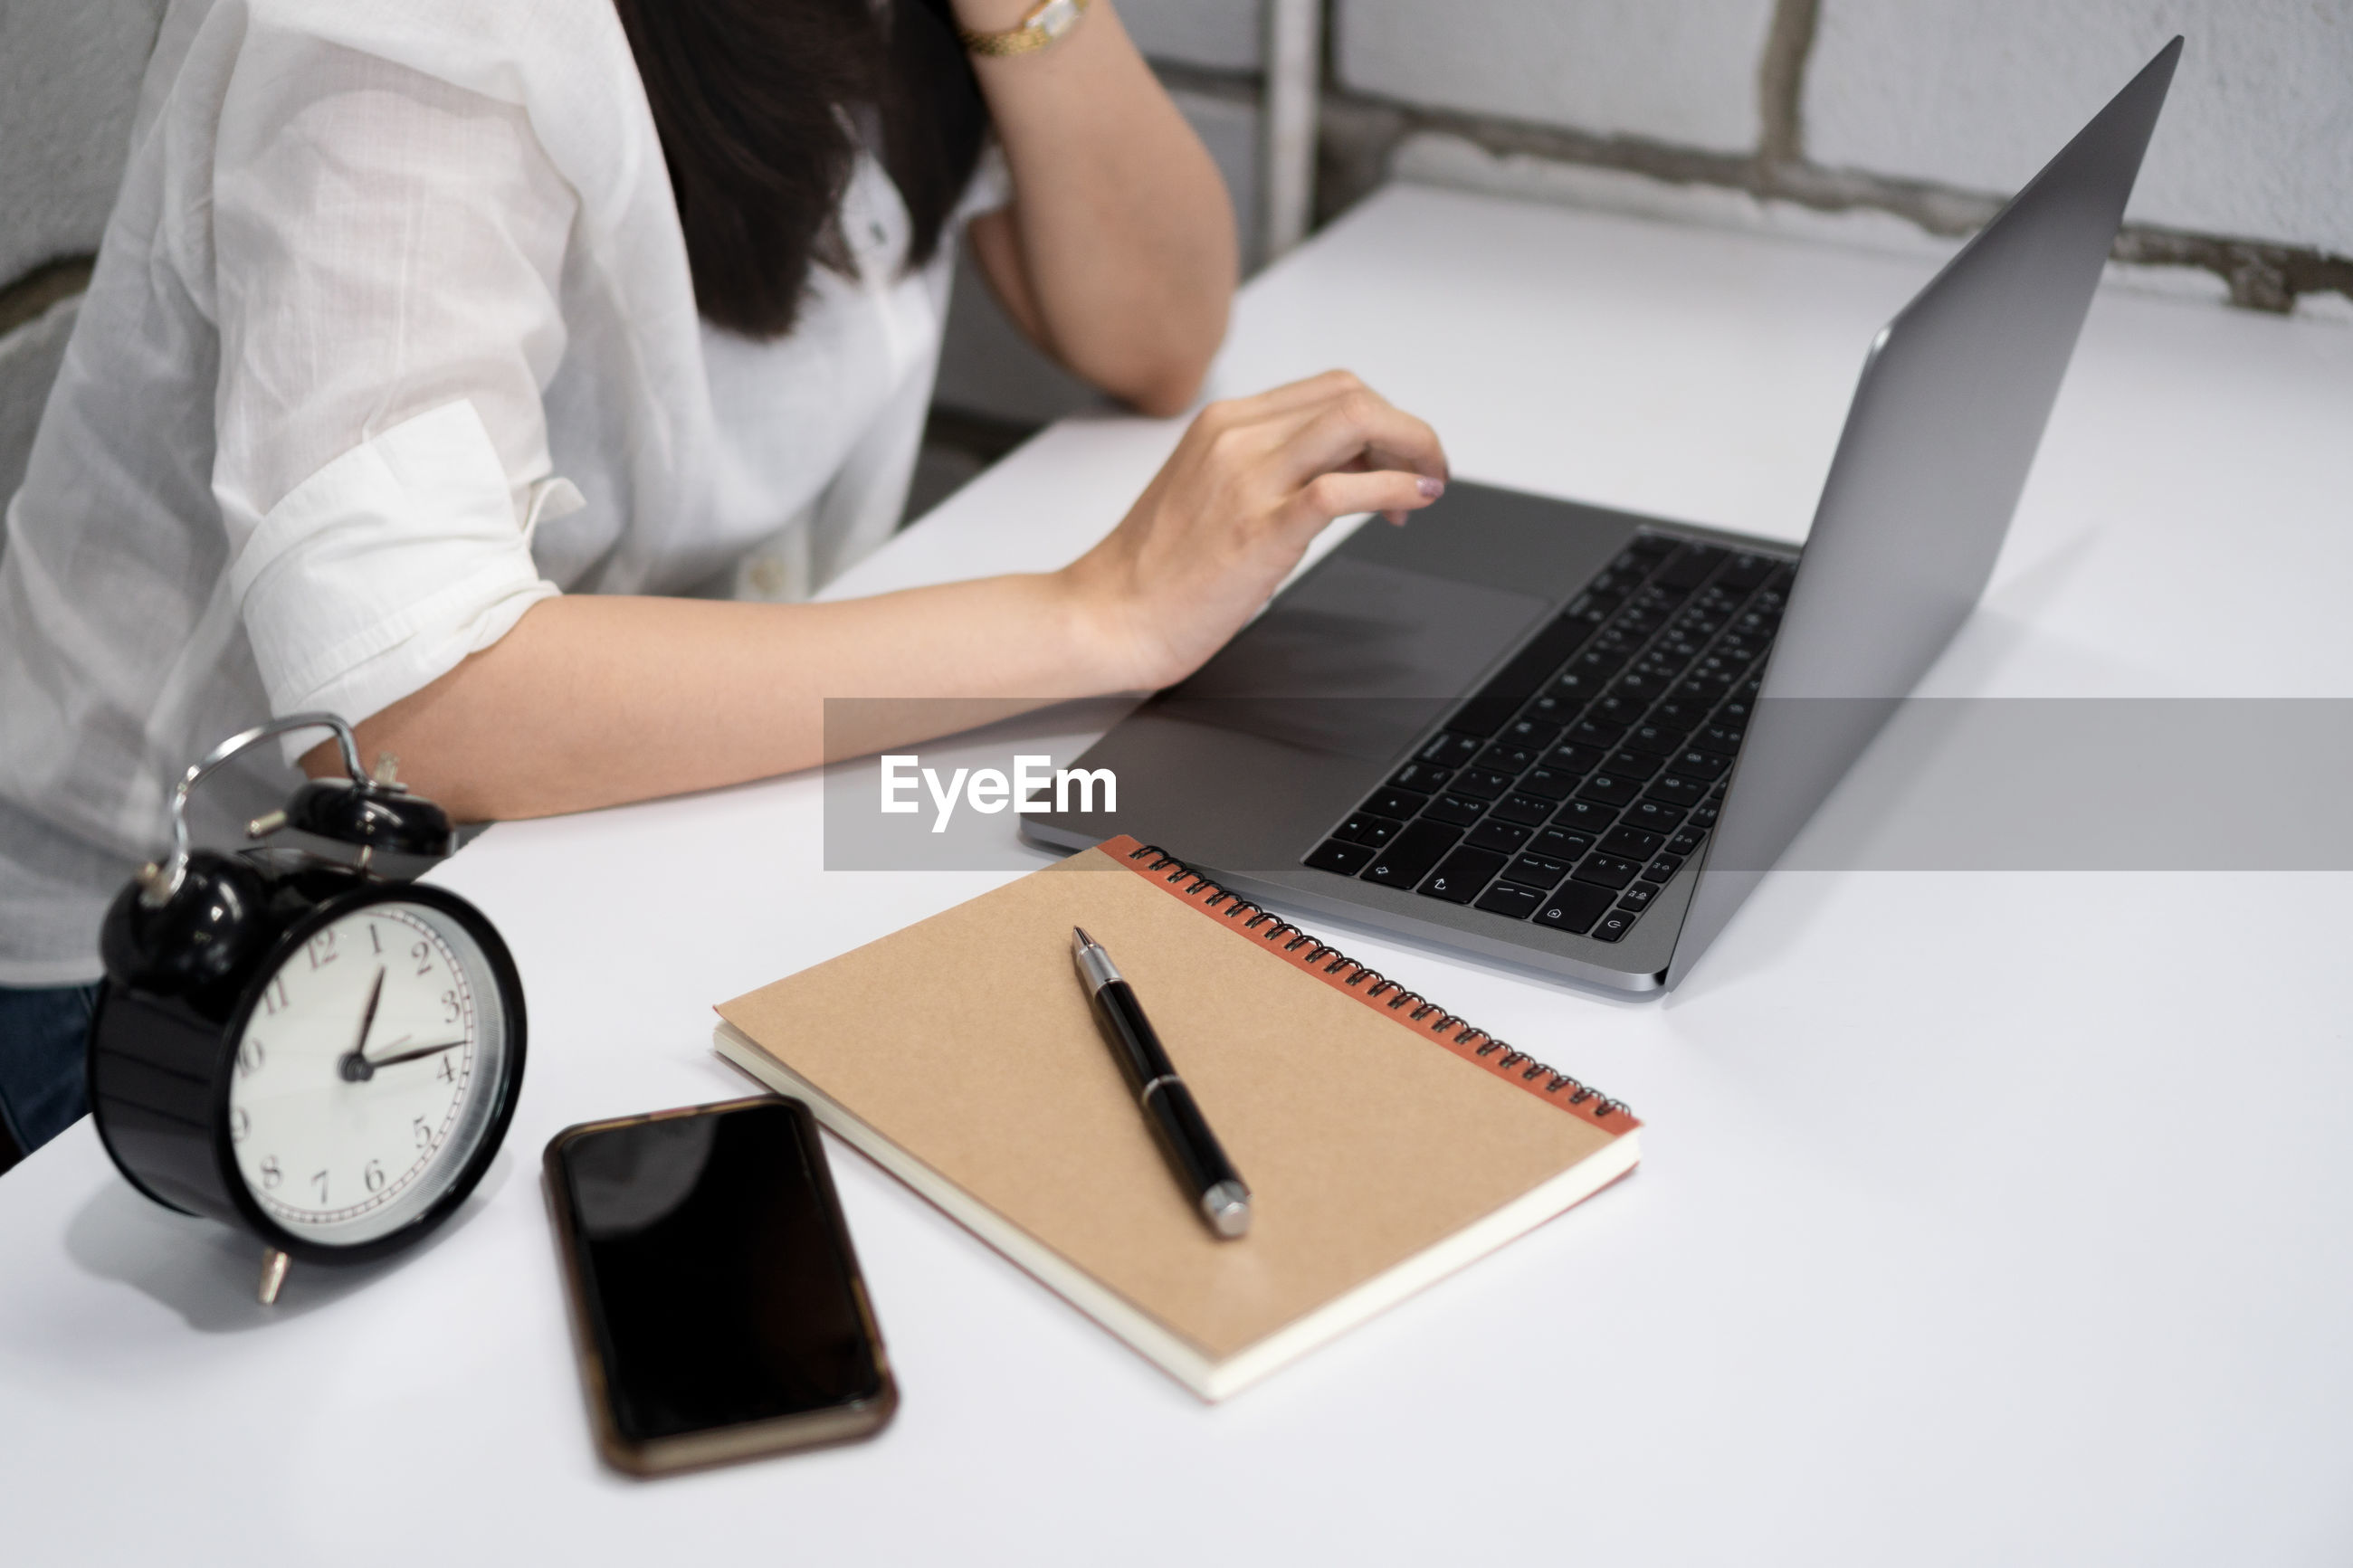 Midsection of businesswoman using laptop on desk in office